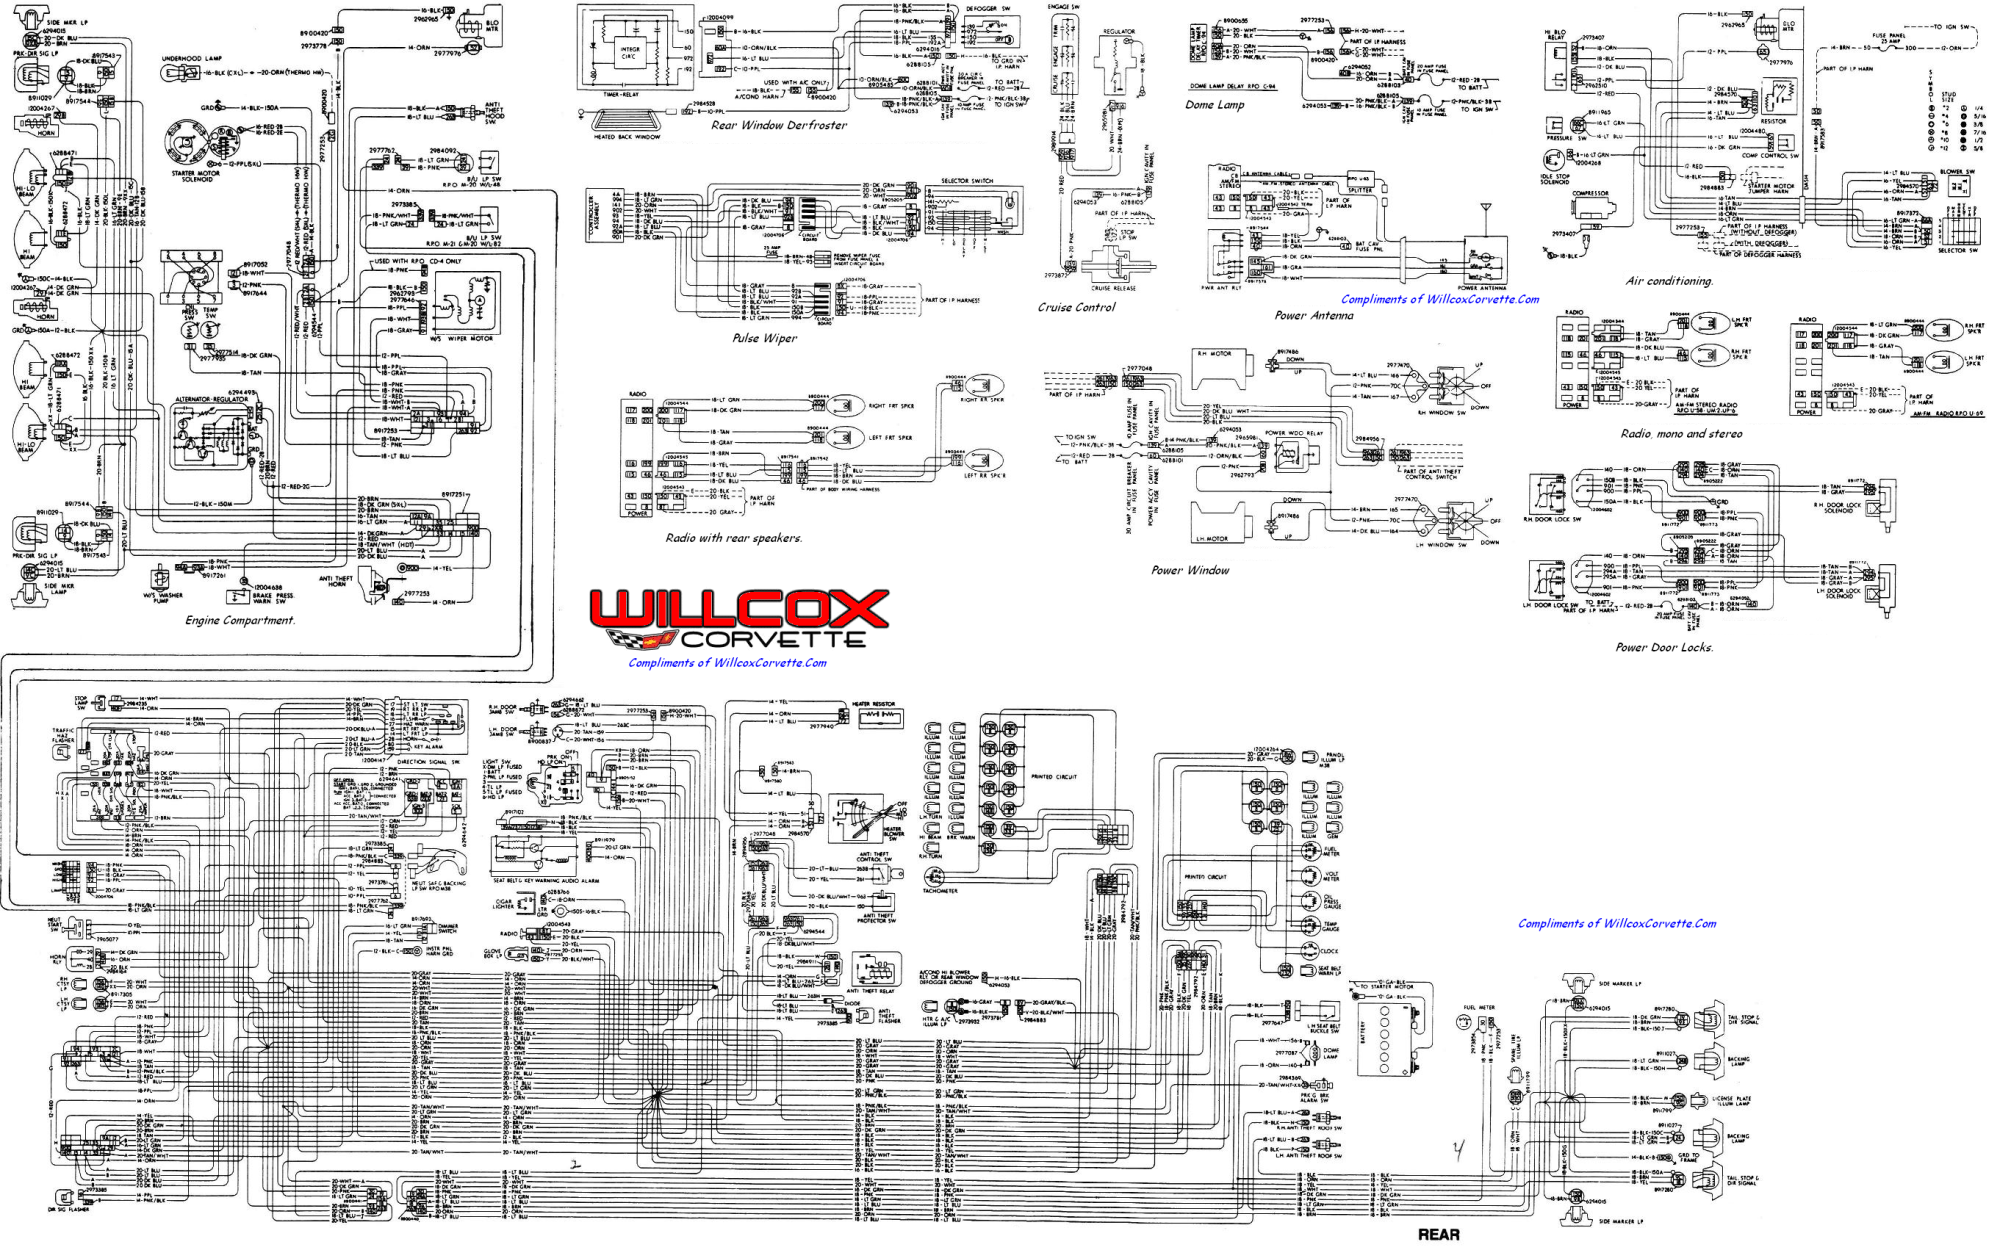 hight resolution of 1972 corvette fuse block diagram wiring diagram1972 corvette fuse panel diagram data wiring diagrams1975 corvette fuse